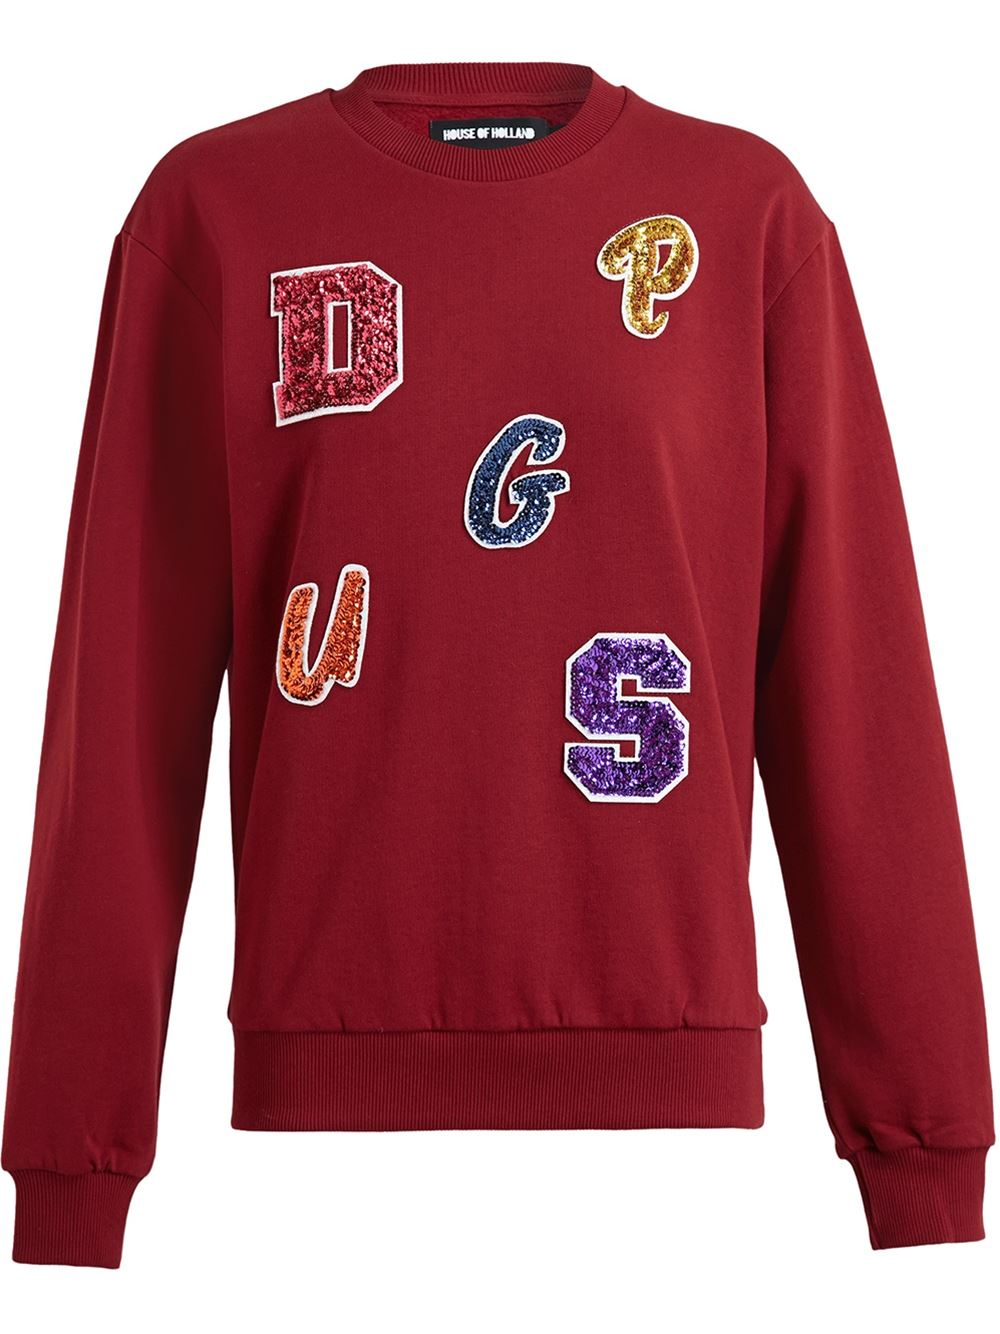 House of holland lettered sweatshirt